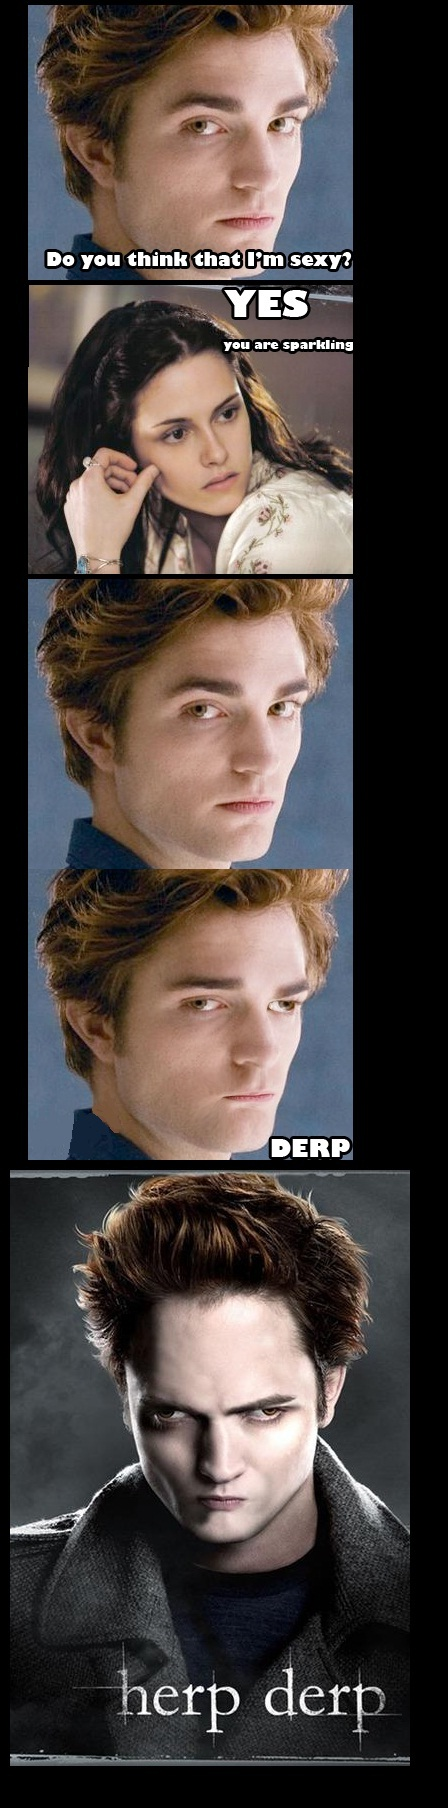 """twilight derp. . in you think that Km sexy? fat: are """"arming. GUYS! we're all hating the wrong person , Robert pattinson isn't the guy whe have to hate , he didn't even see the Gaylight trilogy . IT'S THE FAG WHO WROTE THE"""